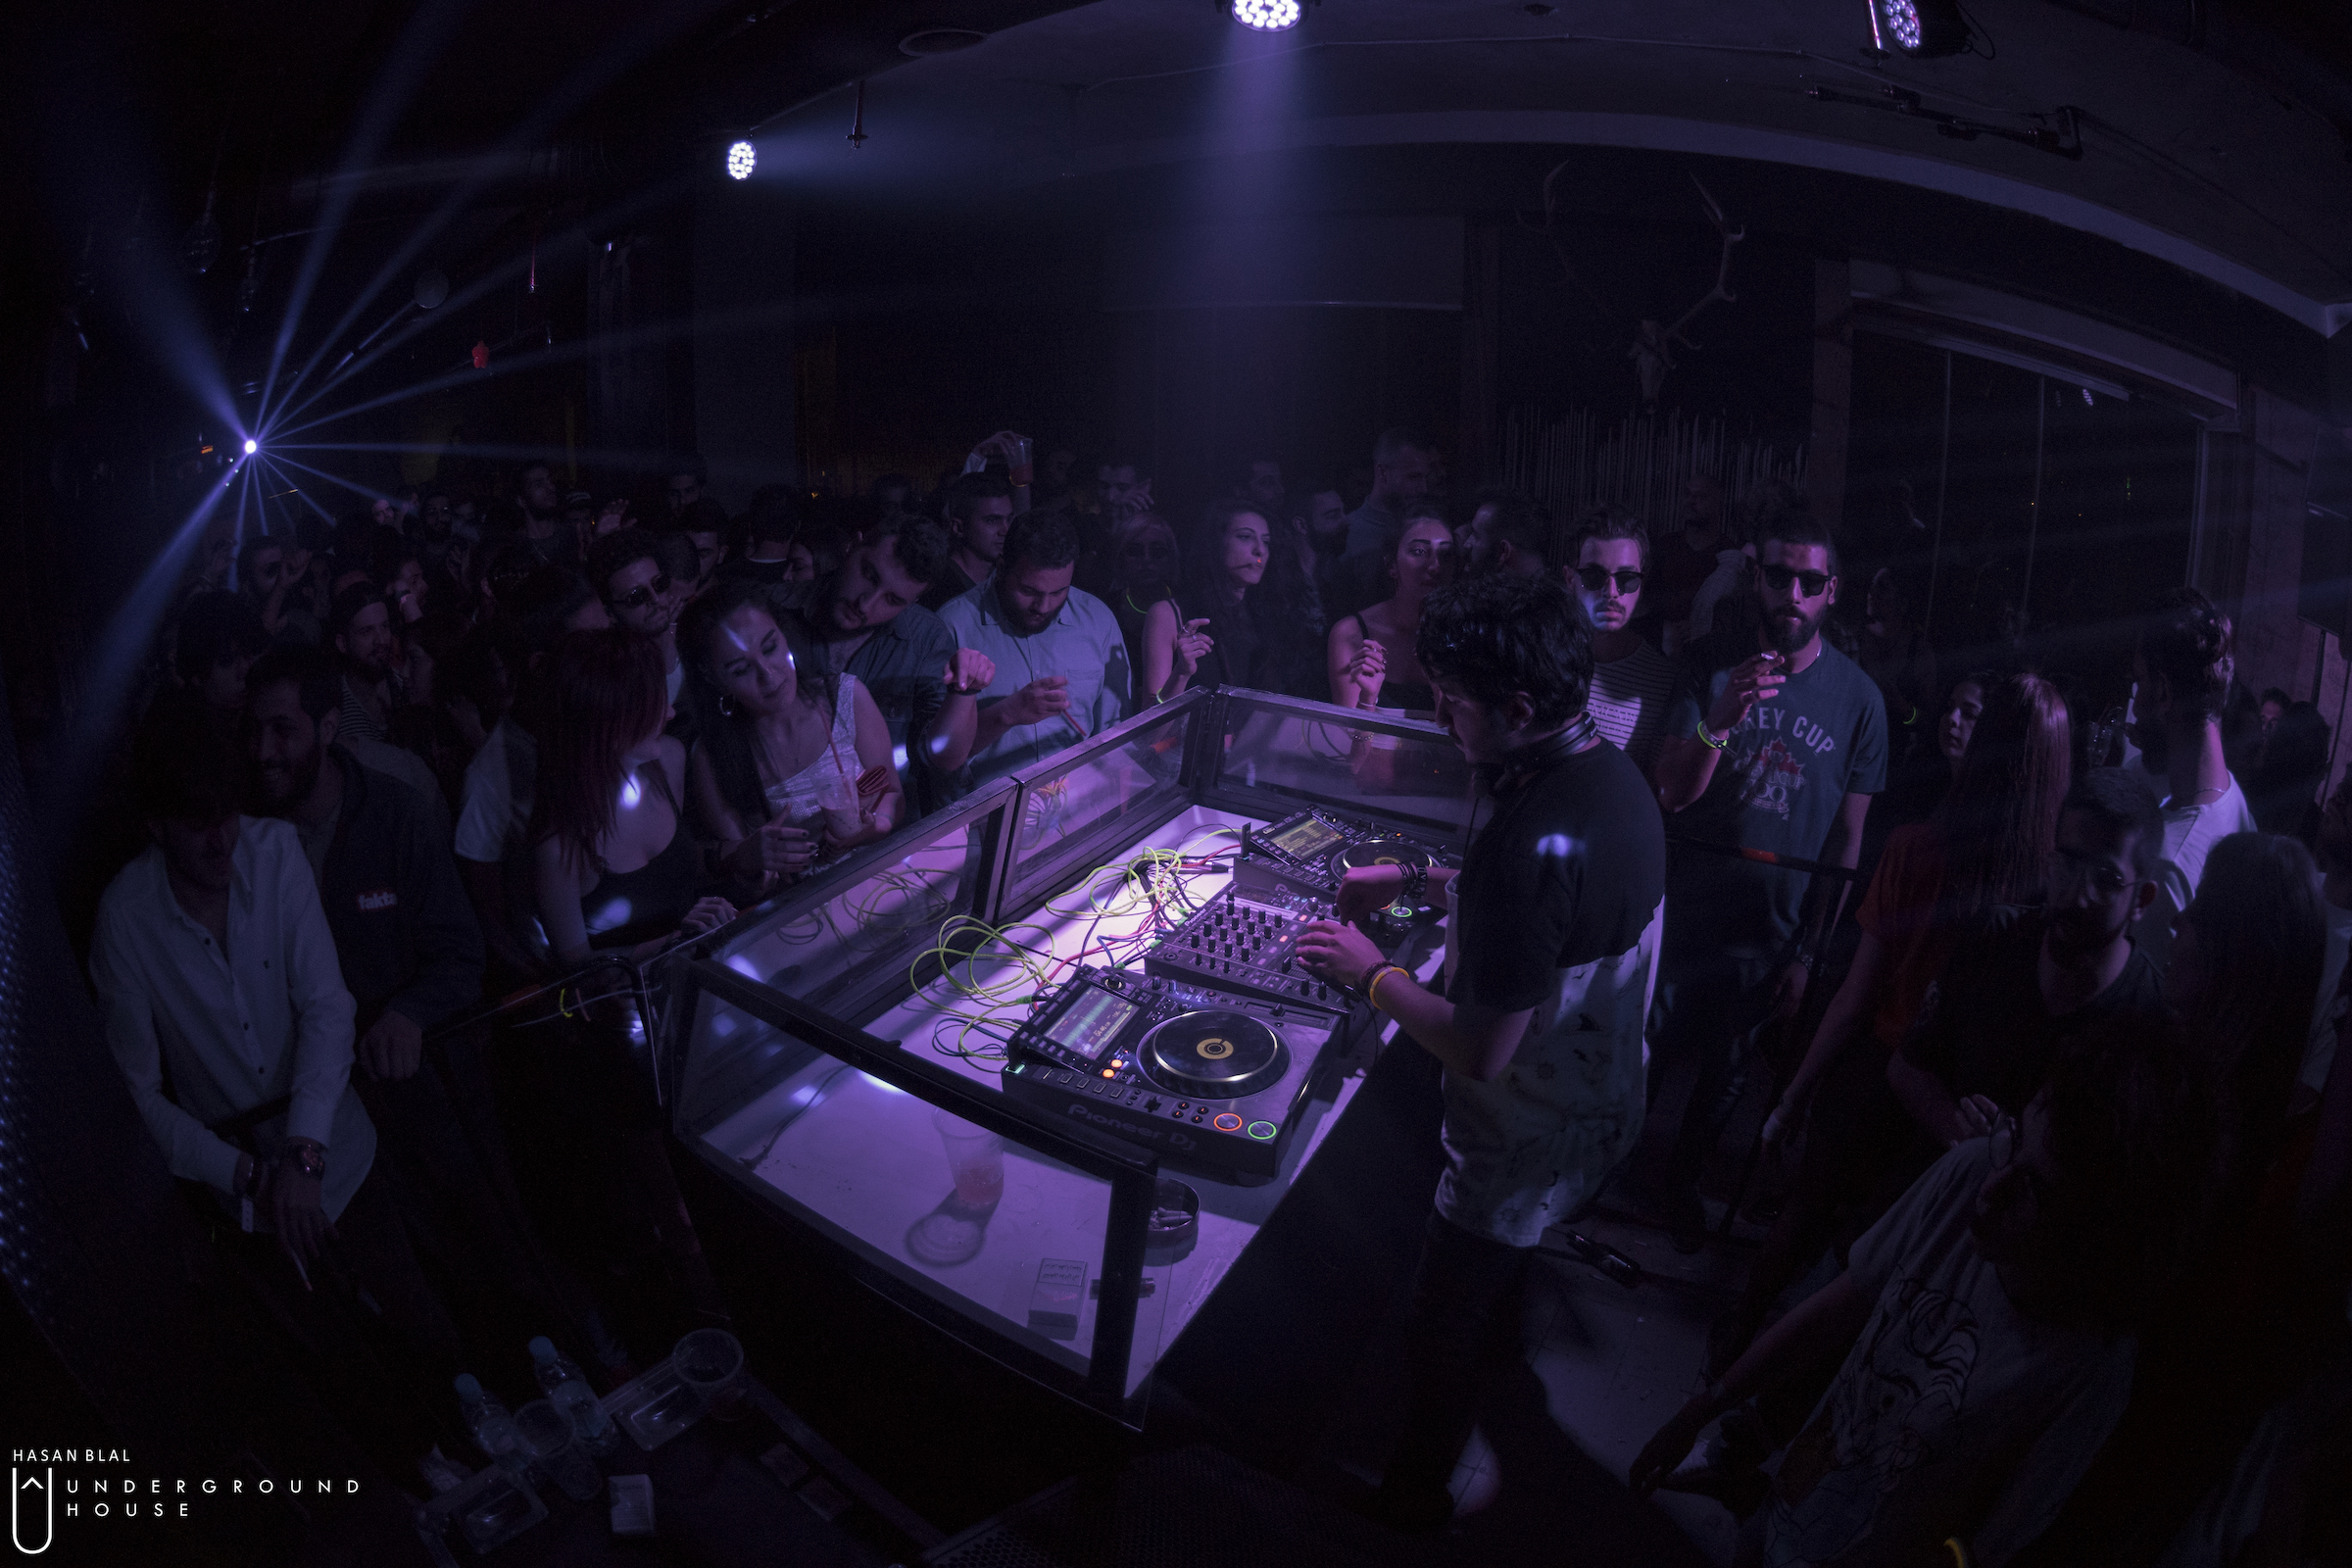 Underground House Syria: Sowing the Seeds of Dance Music